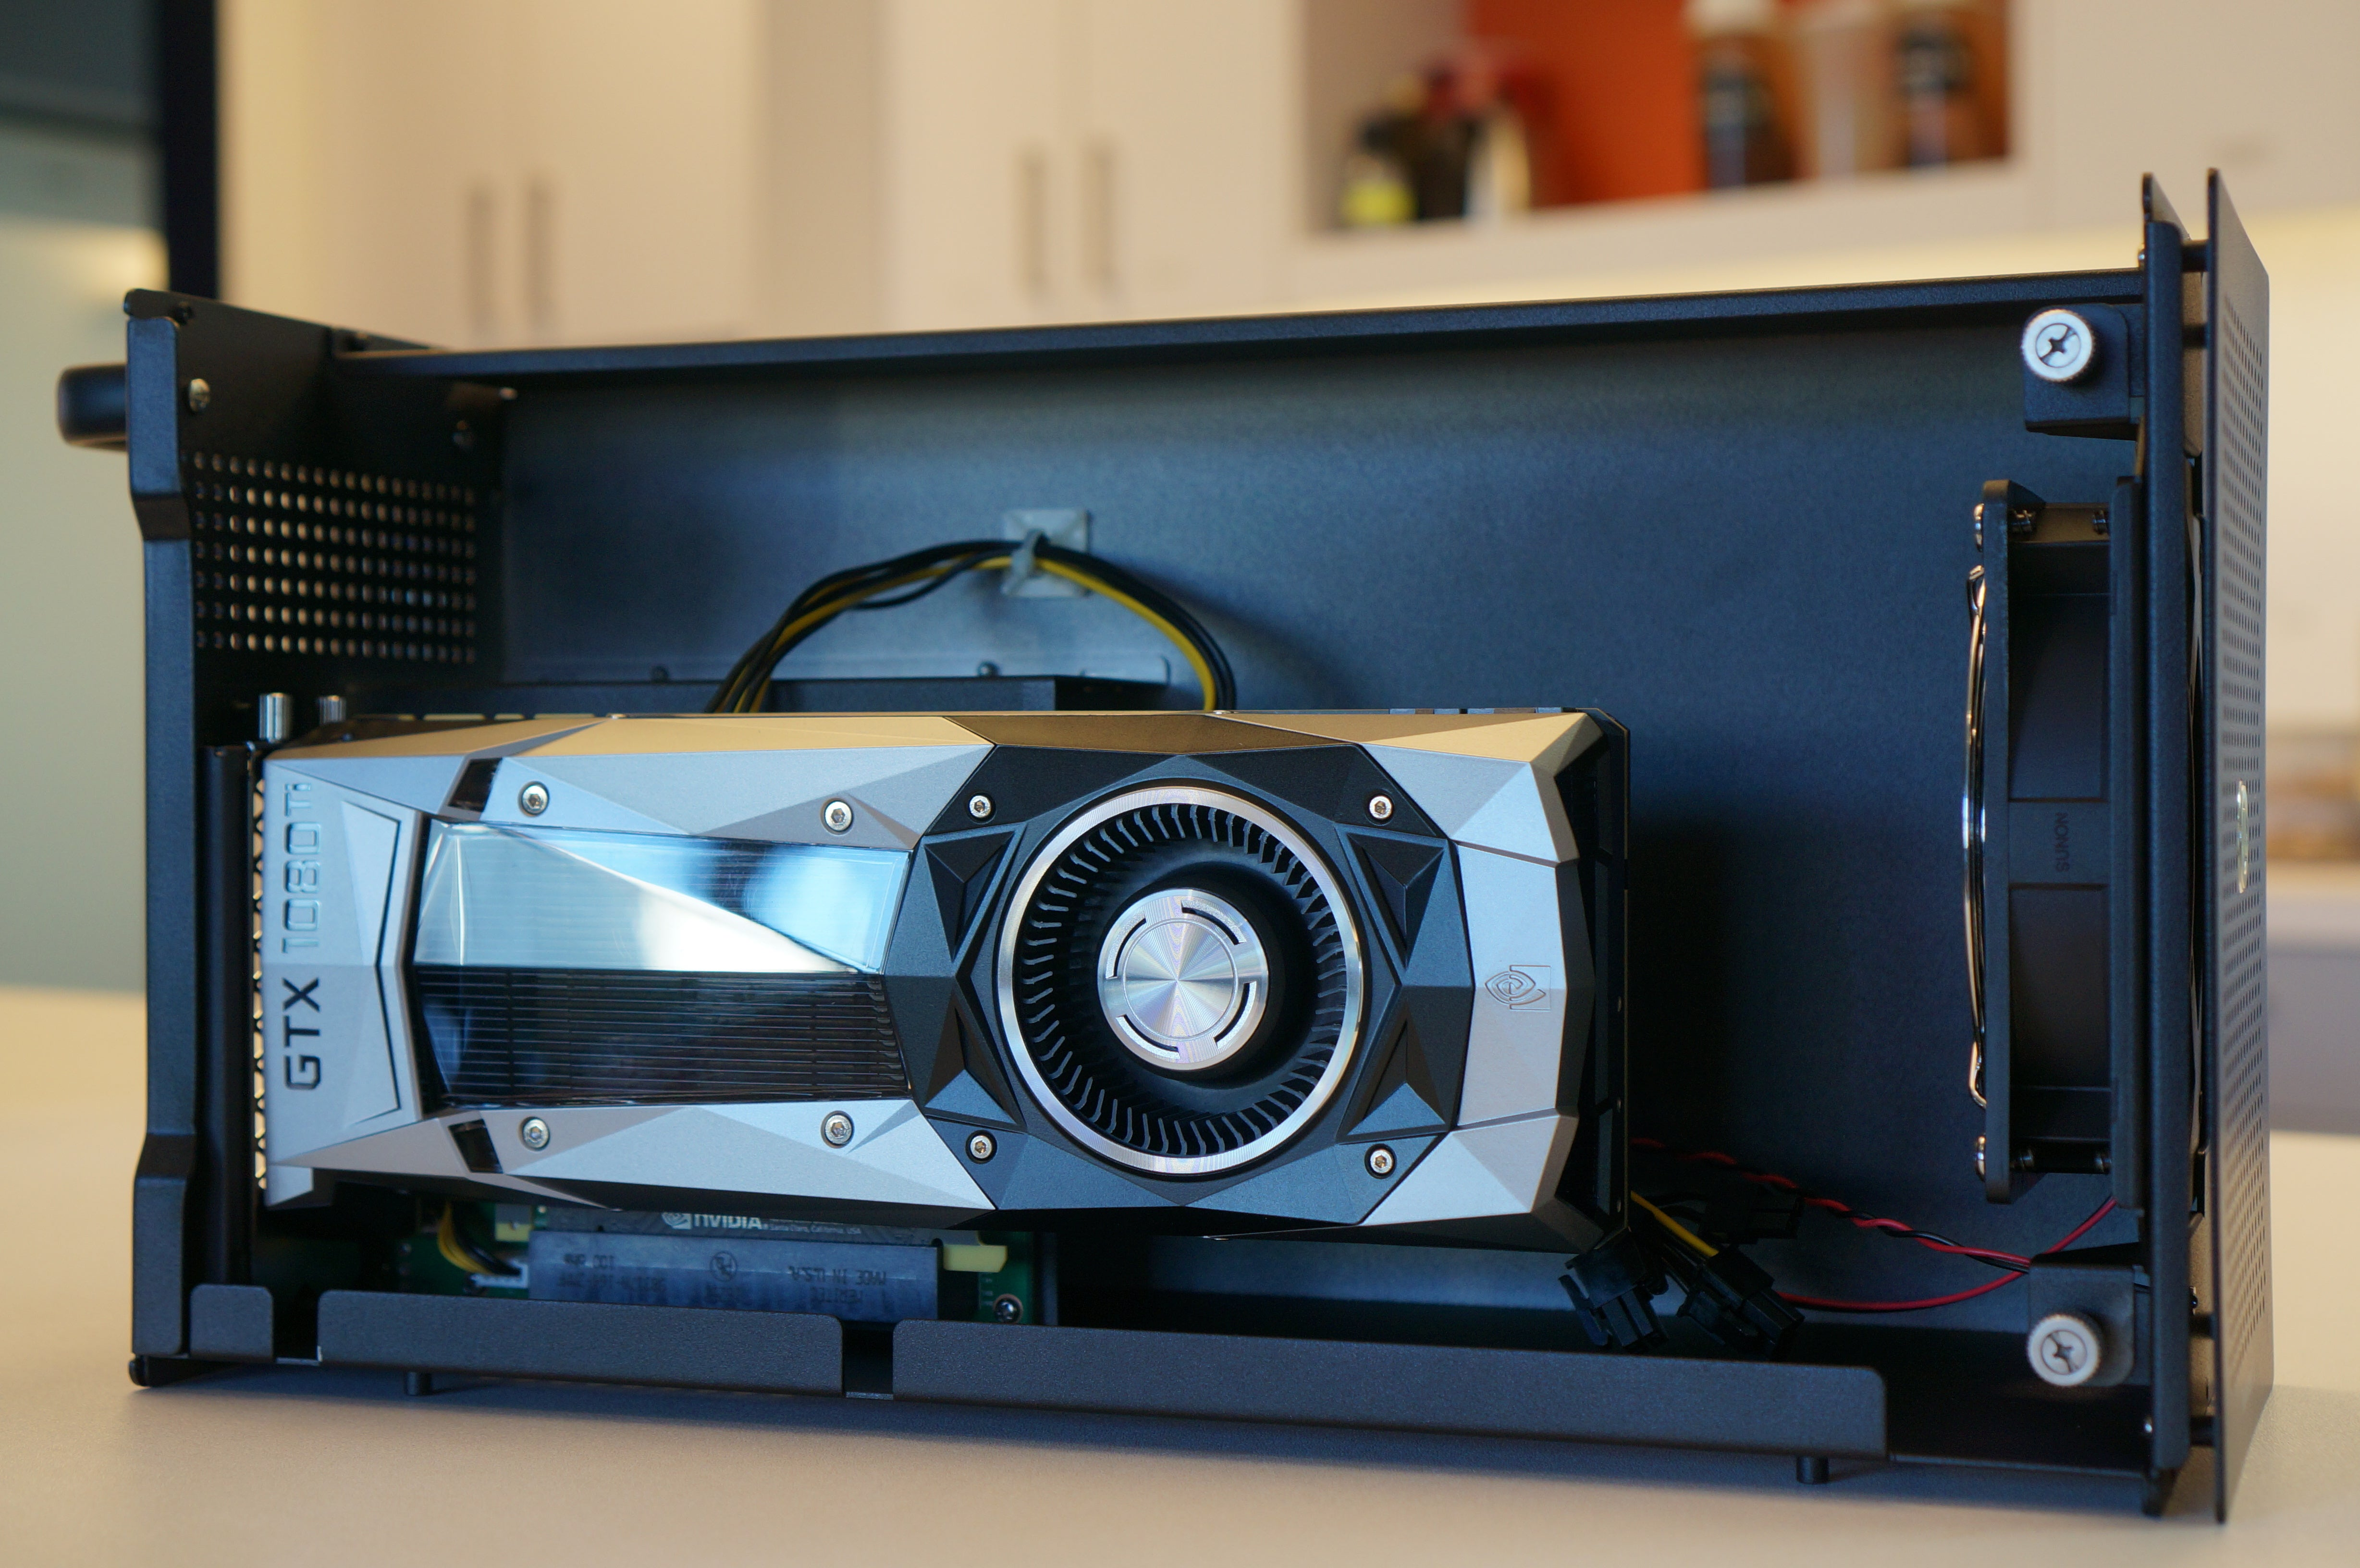 Want cheap external graphics on your laptop? Consider